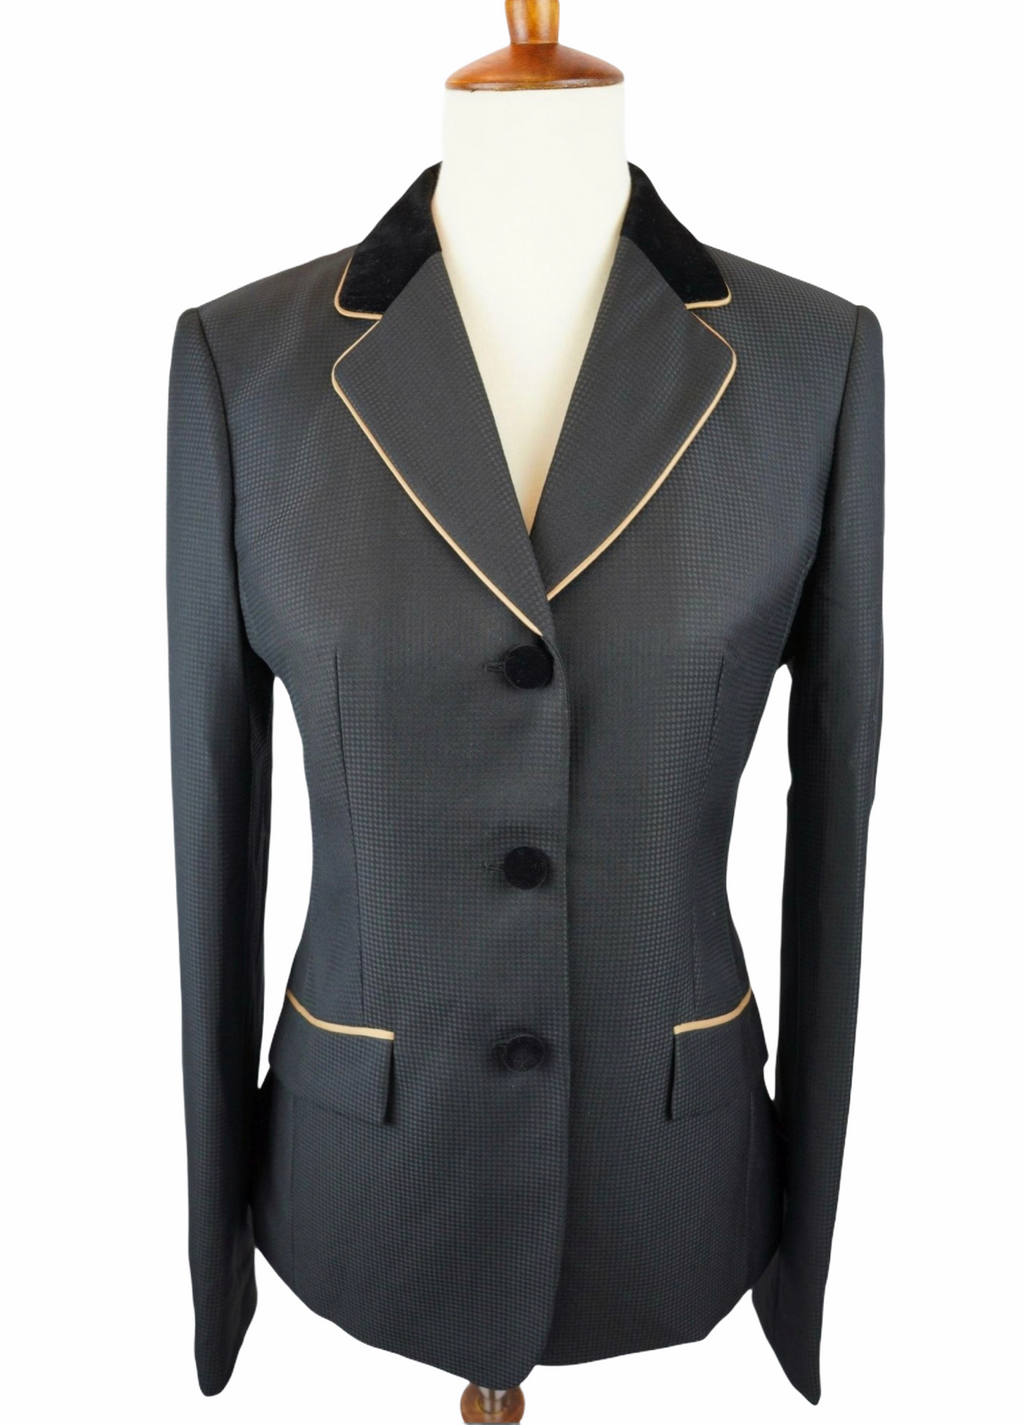 Black Solid + Gold Trim Hunt Coat (Various Sizes)